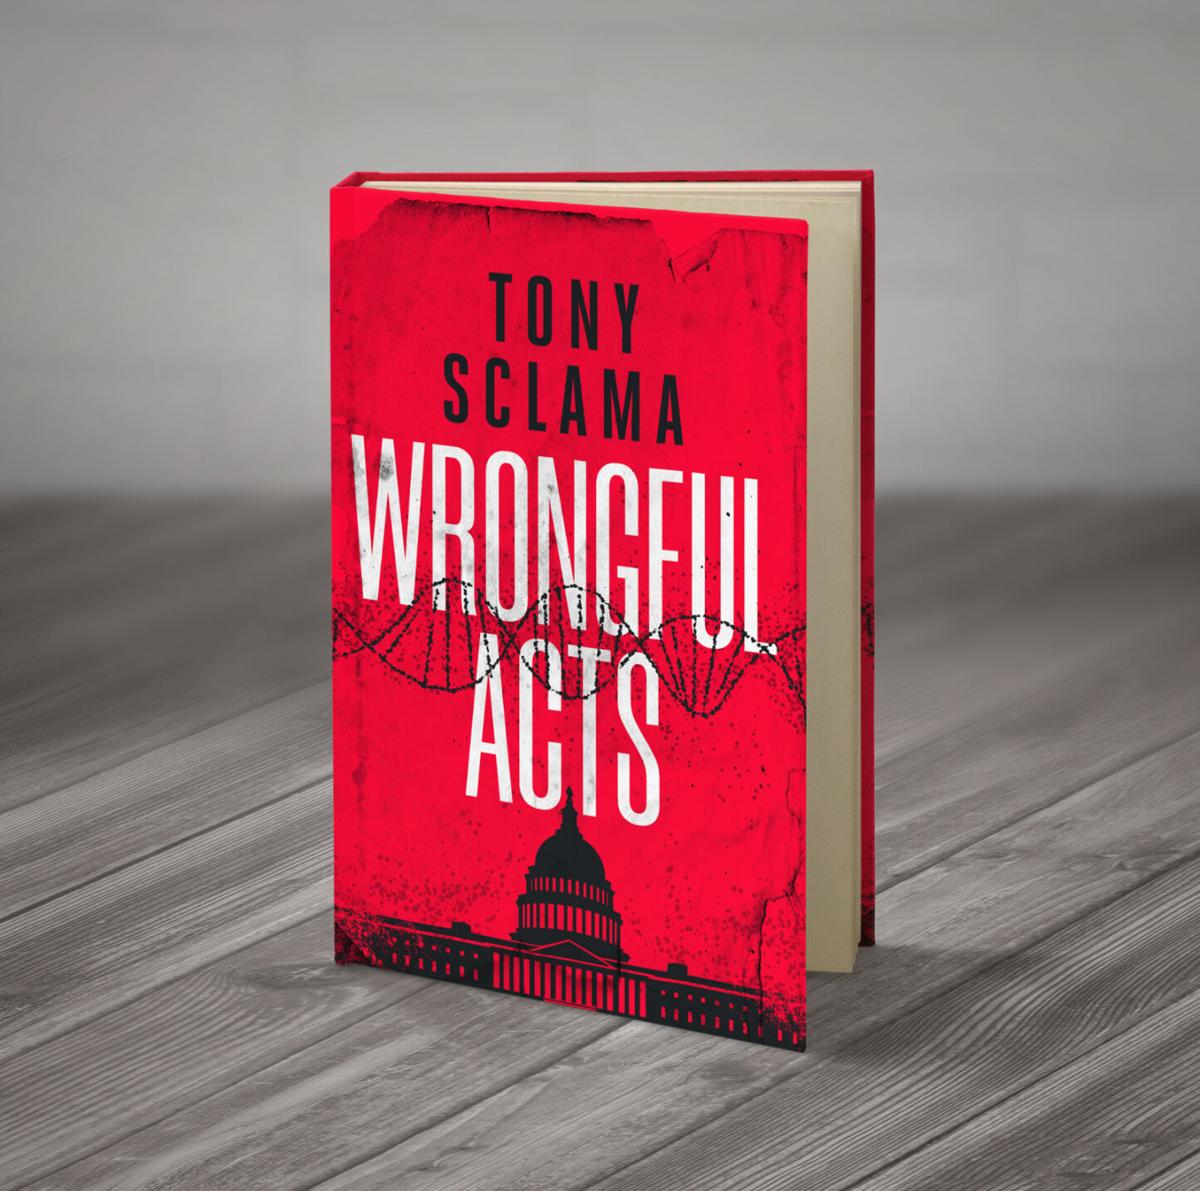 Wrongful Acts